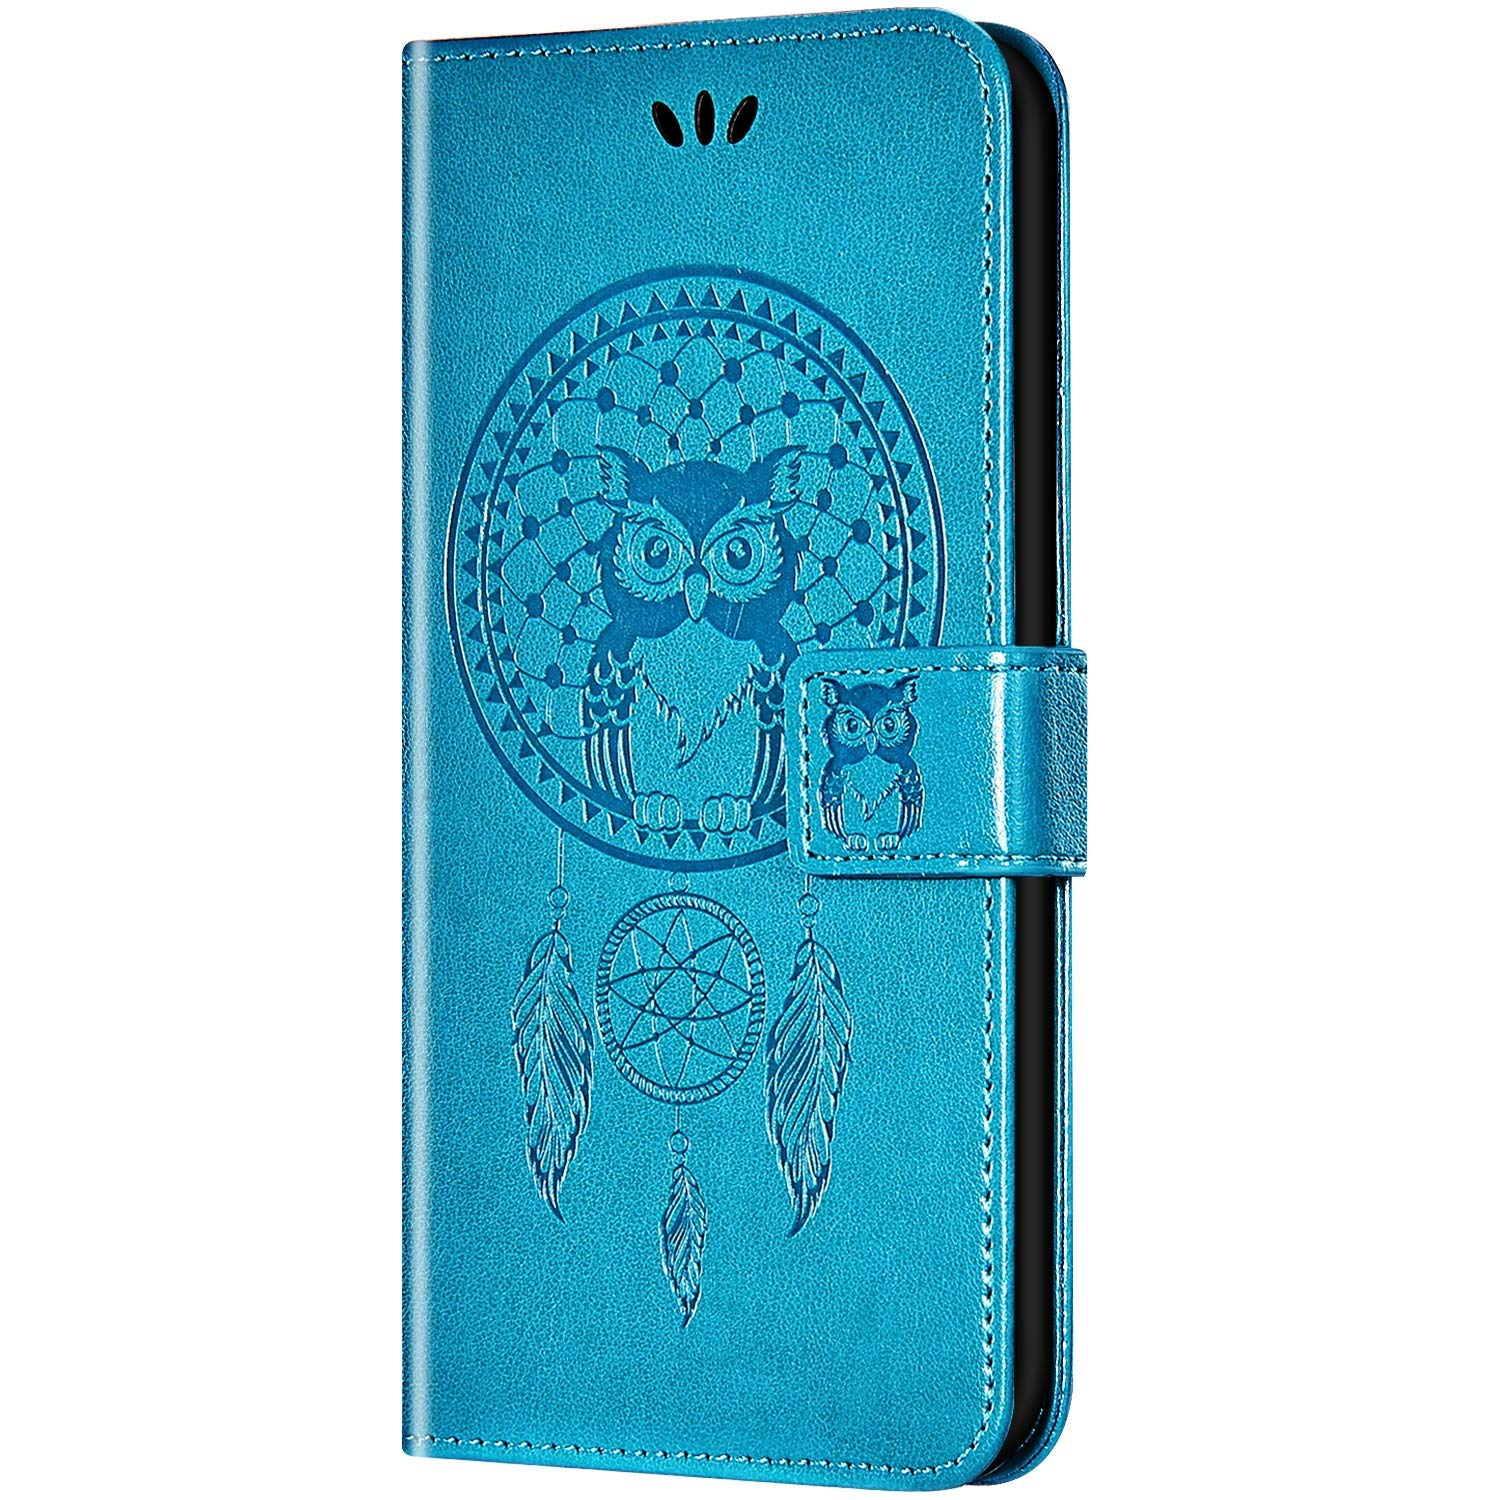 Case for Galaxy A20/Galaxy A30 Flip Case Ultra Slim PU Leather Wallet with Card Holder/Slot and Magnetic Closure Shockproof Cartoon Animal Owl Embossed Protective Cover for Galaxy A20/A30,Blue by ikasus